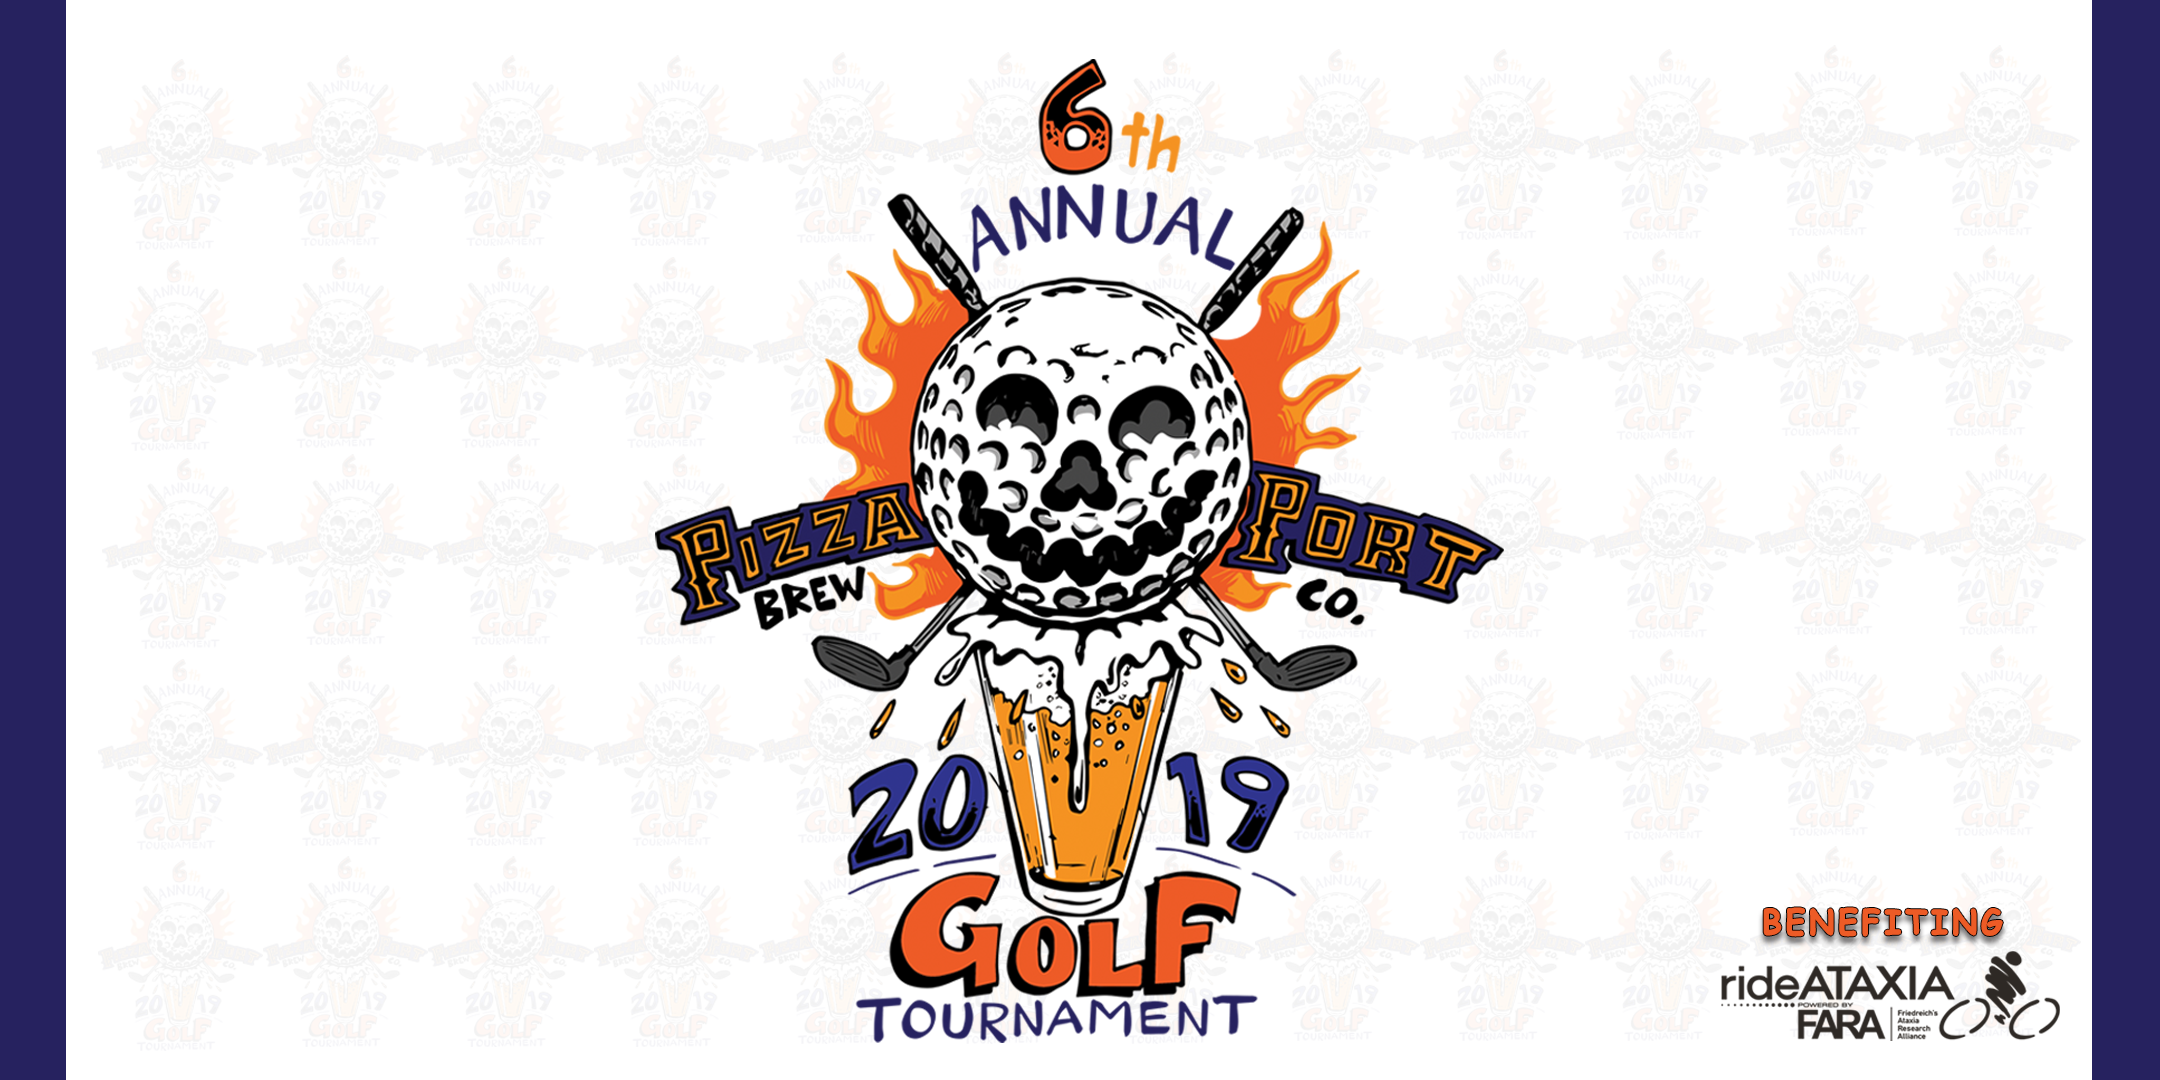 6th Annual Pizza Port Golf Tournament